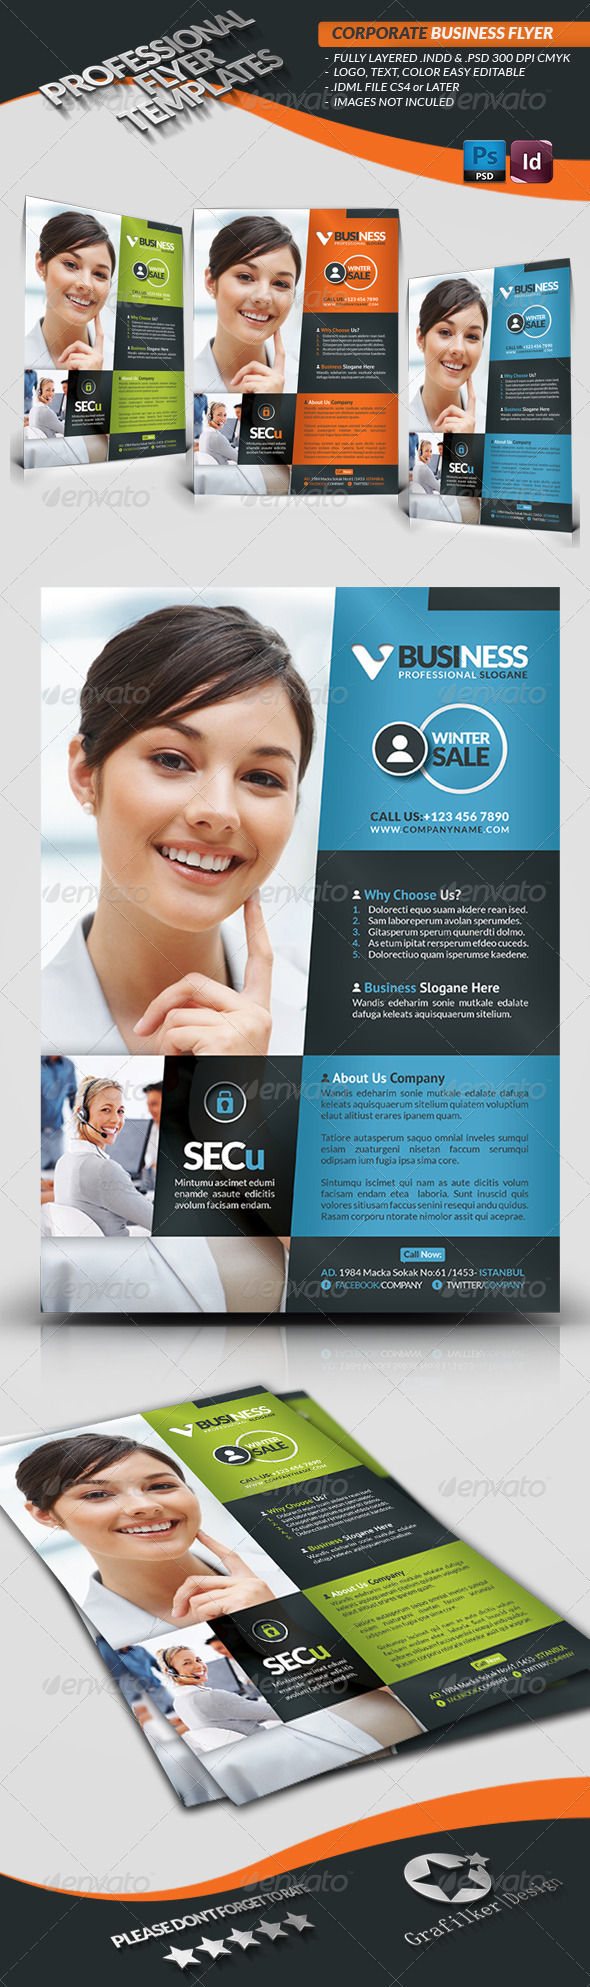 GraphicRiver Corporate Business Flyer 3727932